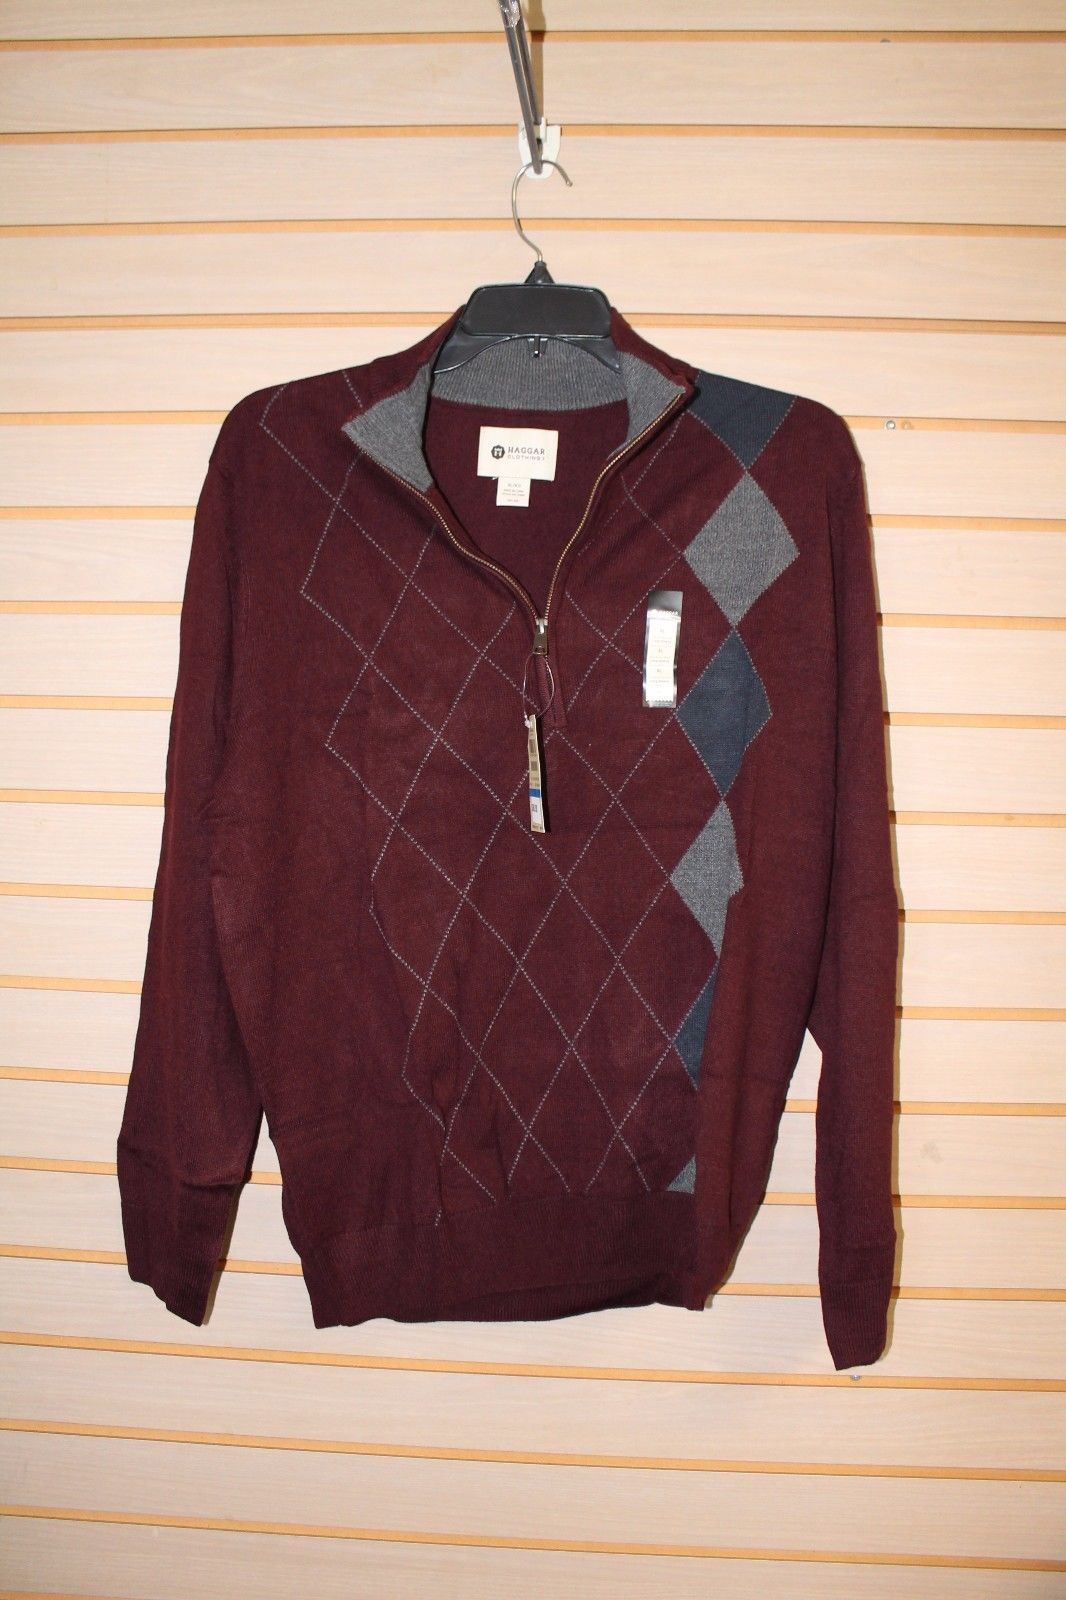 NEW MENS SIZE LARGE L 42-44 HAGGAR 1/4 ZIP DARK RED ARGYLE SWEATER LONGSLEEVE